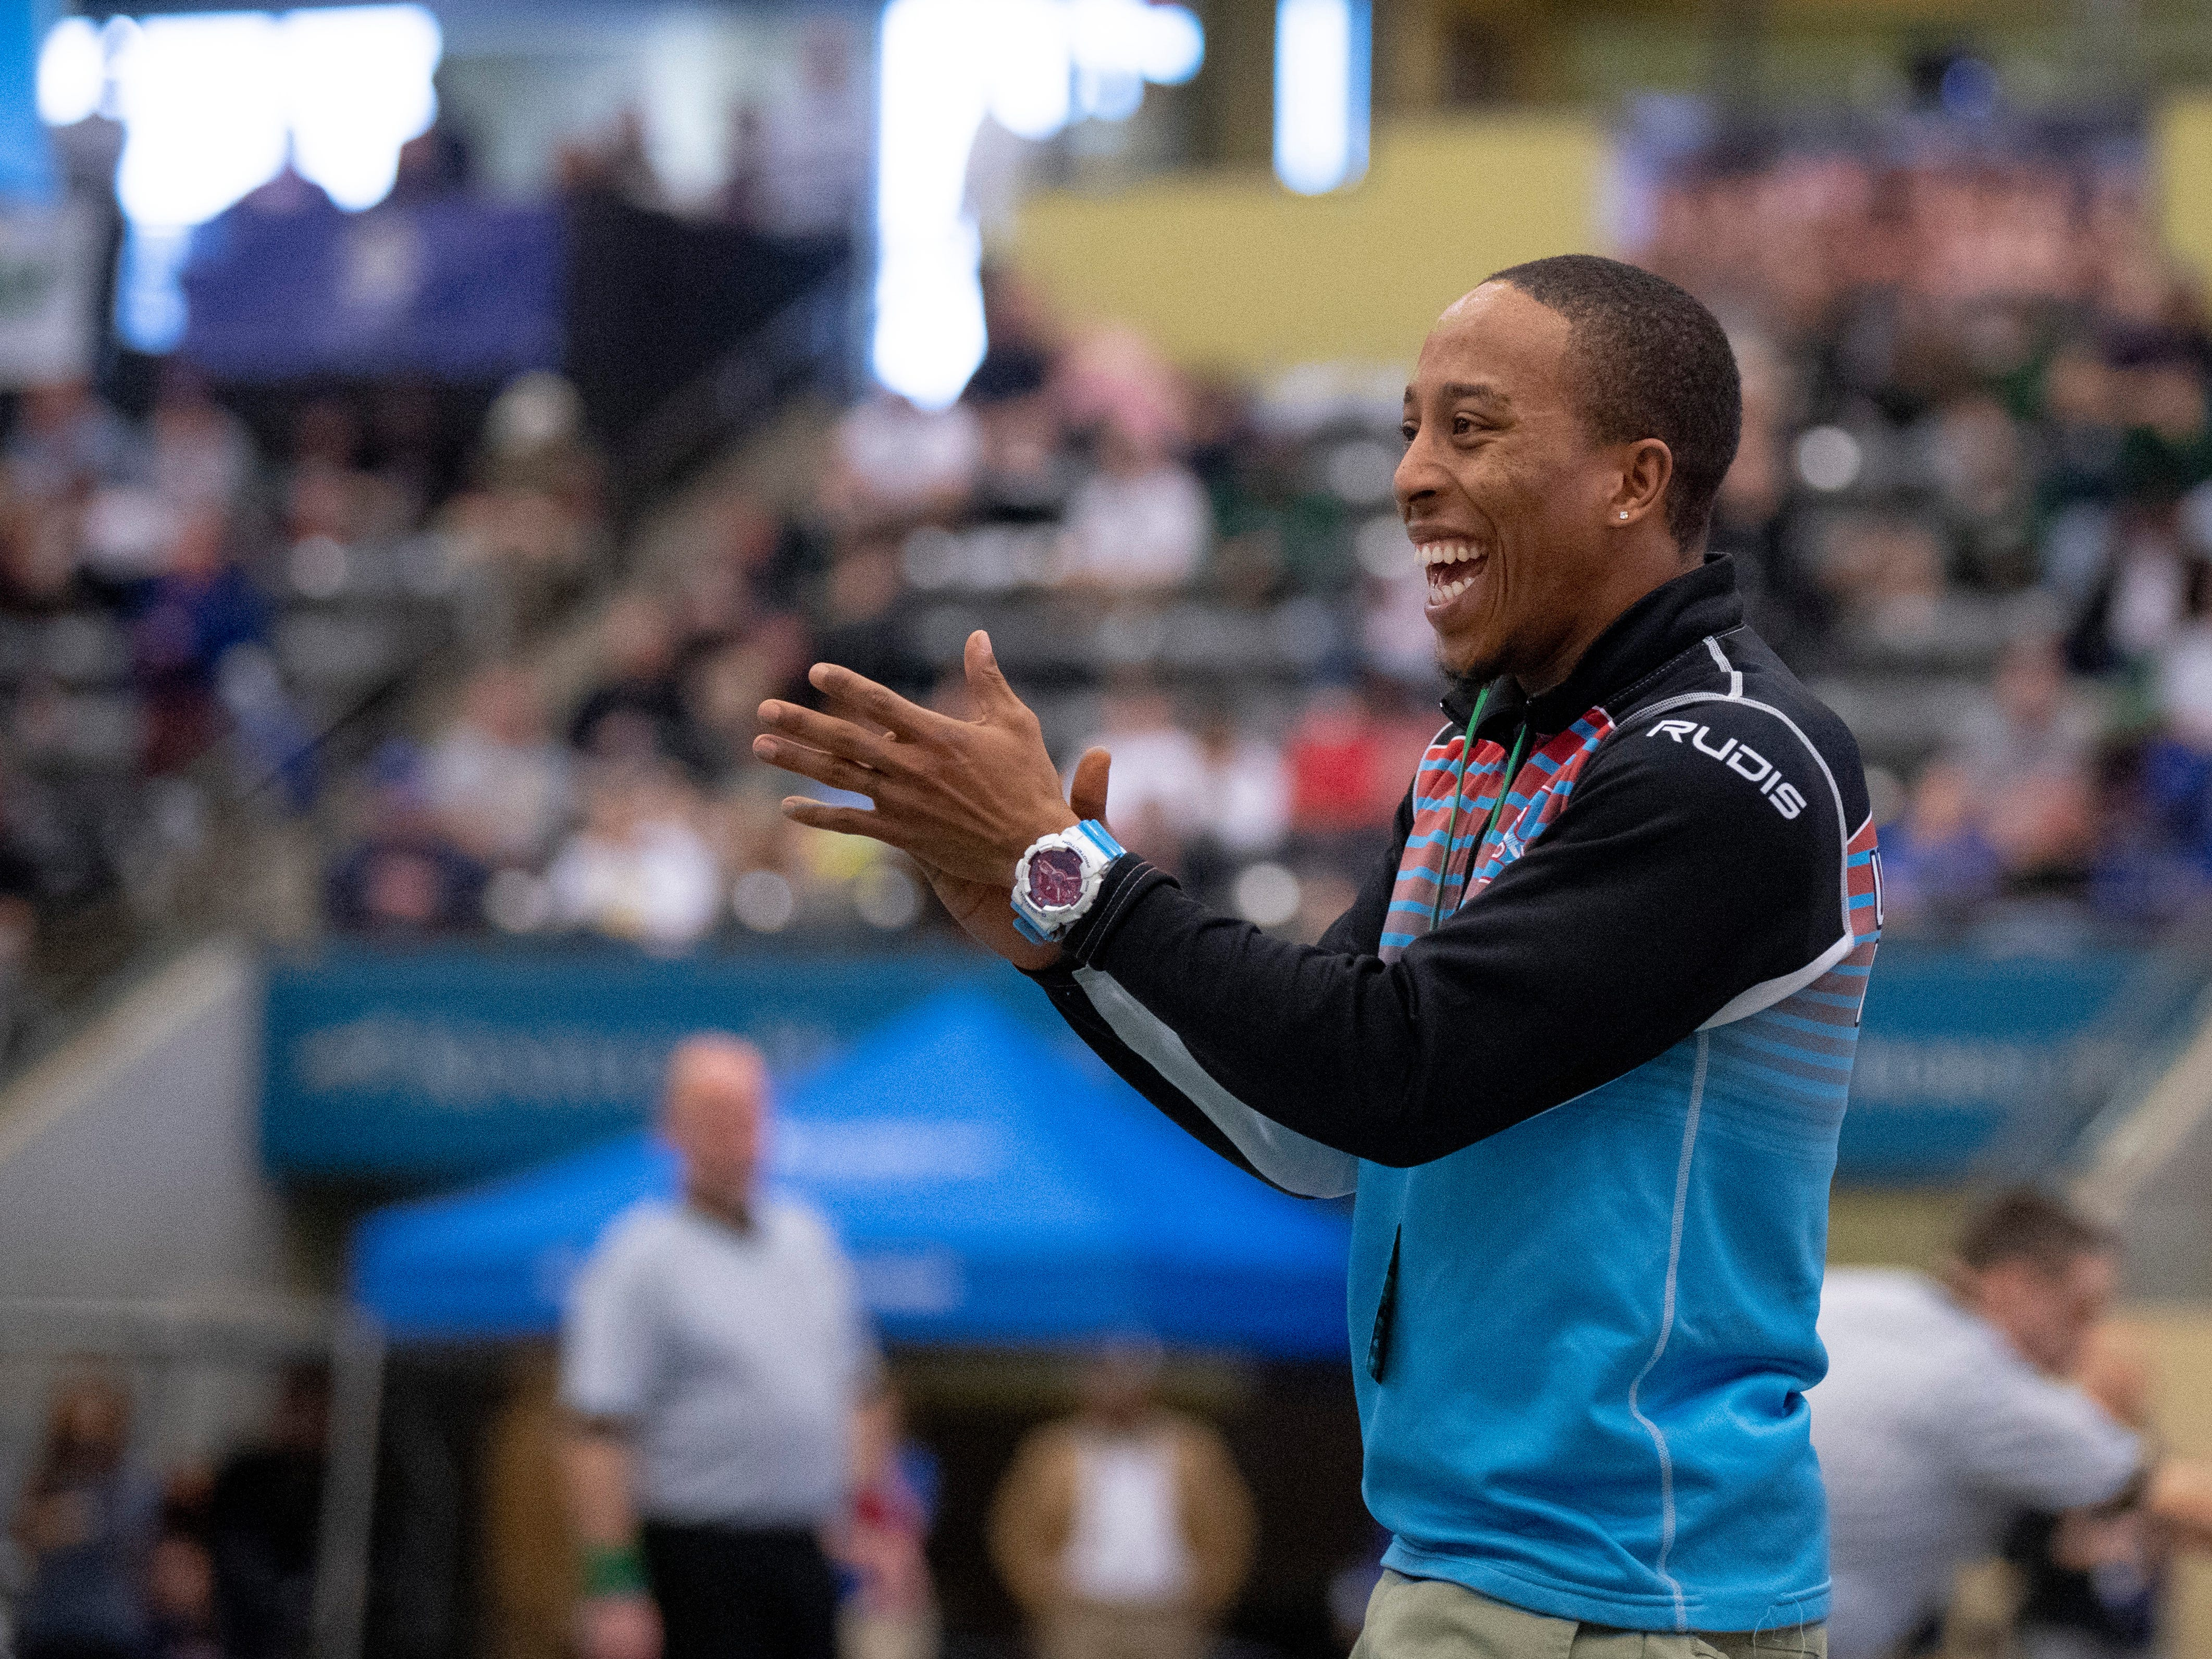 Union County coach Jarvis Elam celebrates Dalton Russelburg's 152-pound semifinal win at the KHSAA State Wrestling Championships at the Alltech Arena in Lexington, Ky., Saturday afternoon.